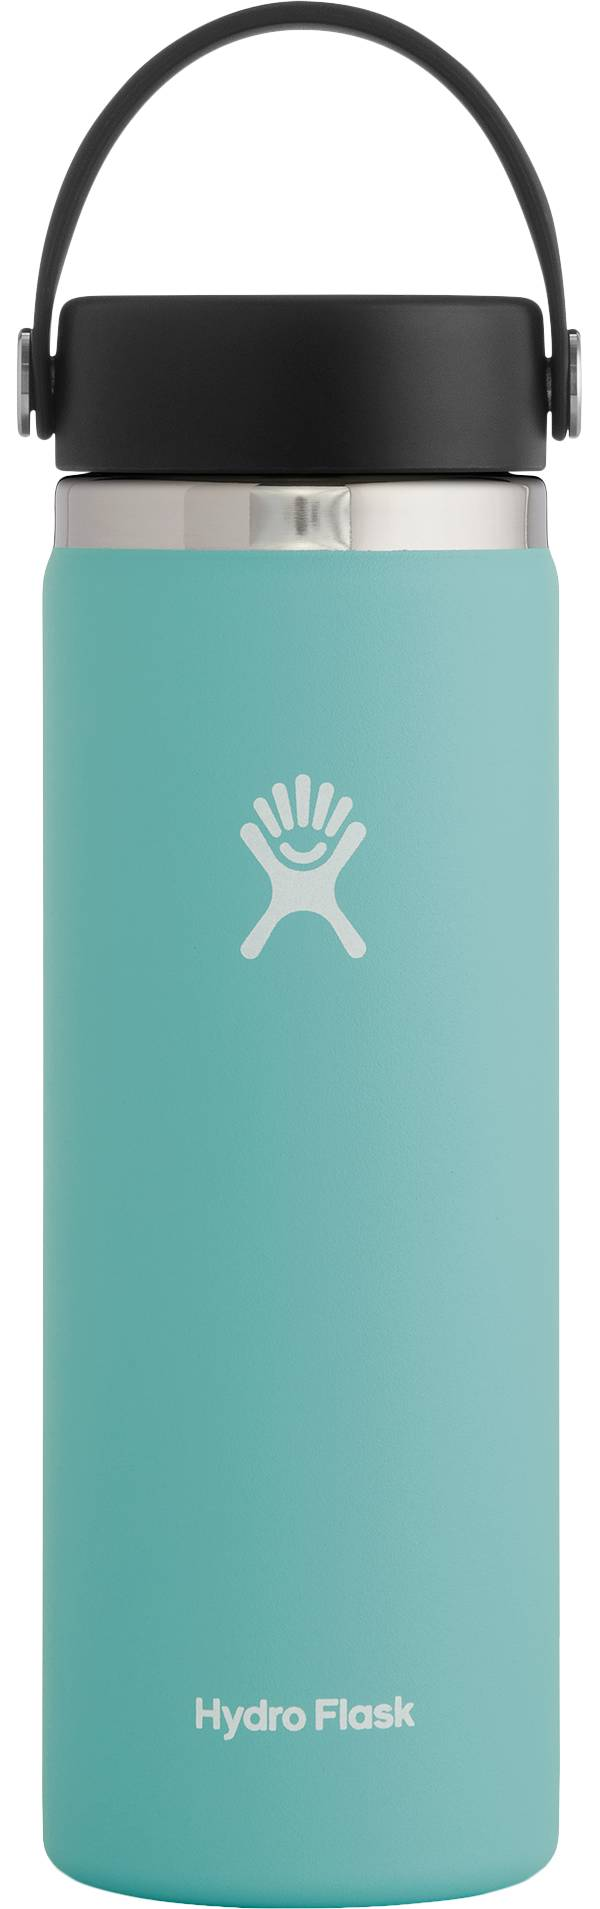 Hydro Flask Wide Mouth 20 oz. Bottle product image